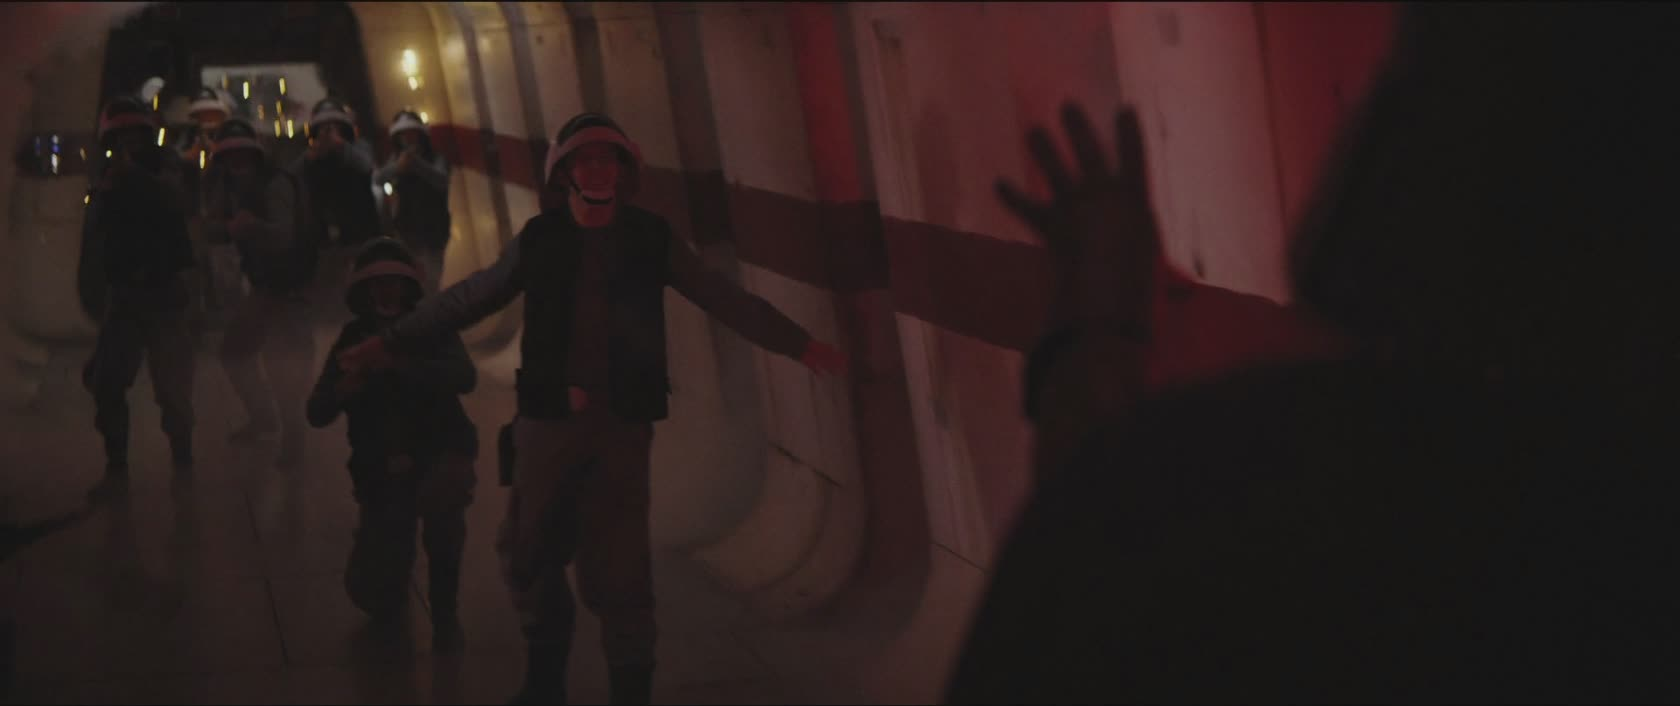 EmpireDidNothingWrong, StarWars, Ask me to gif you anything from Rogue One! (reddit) GIFs